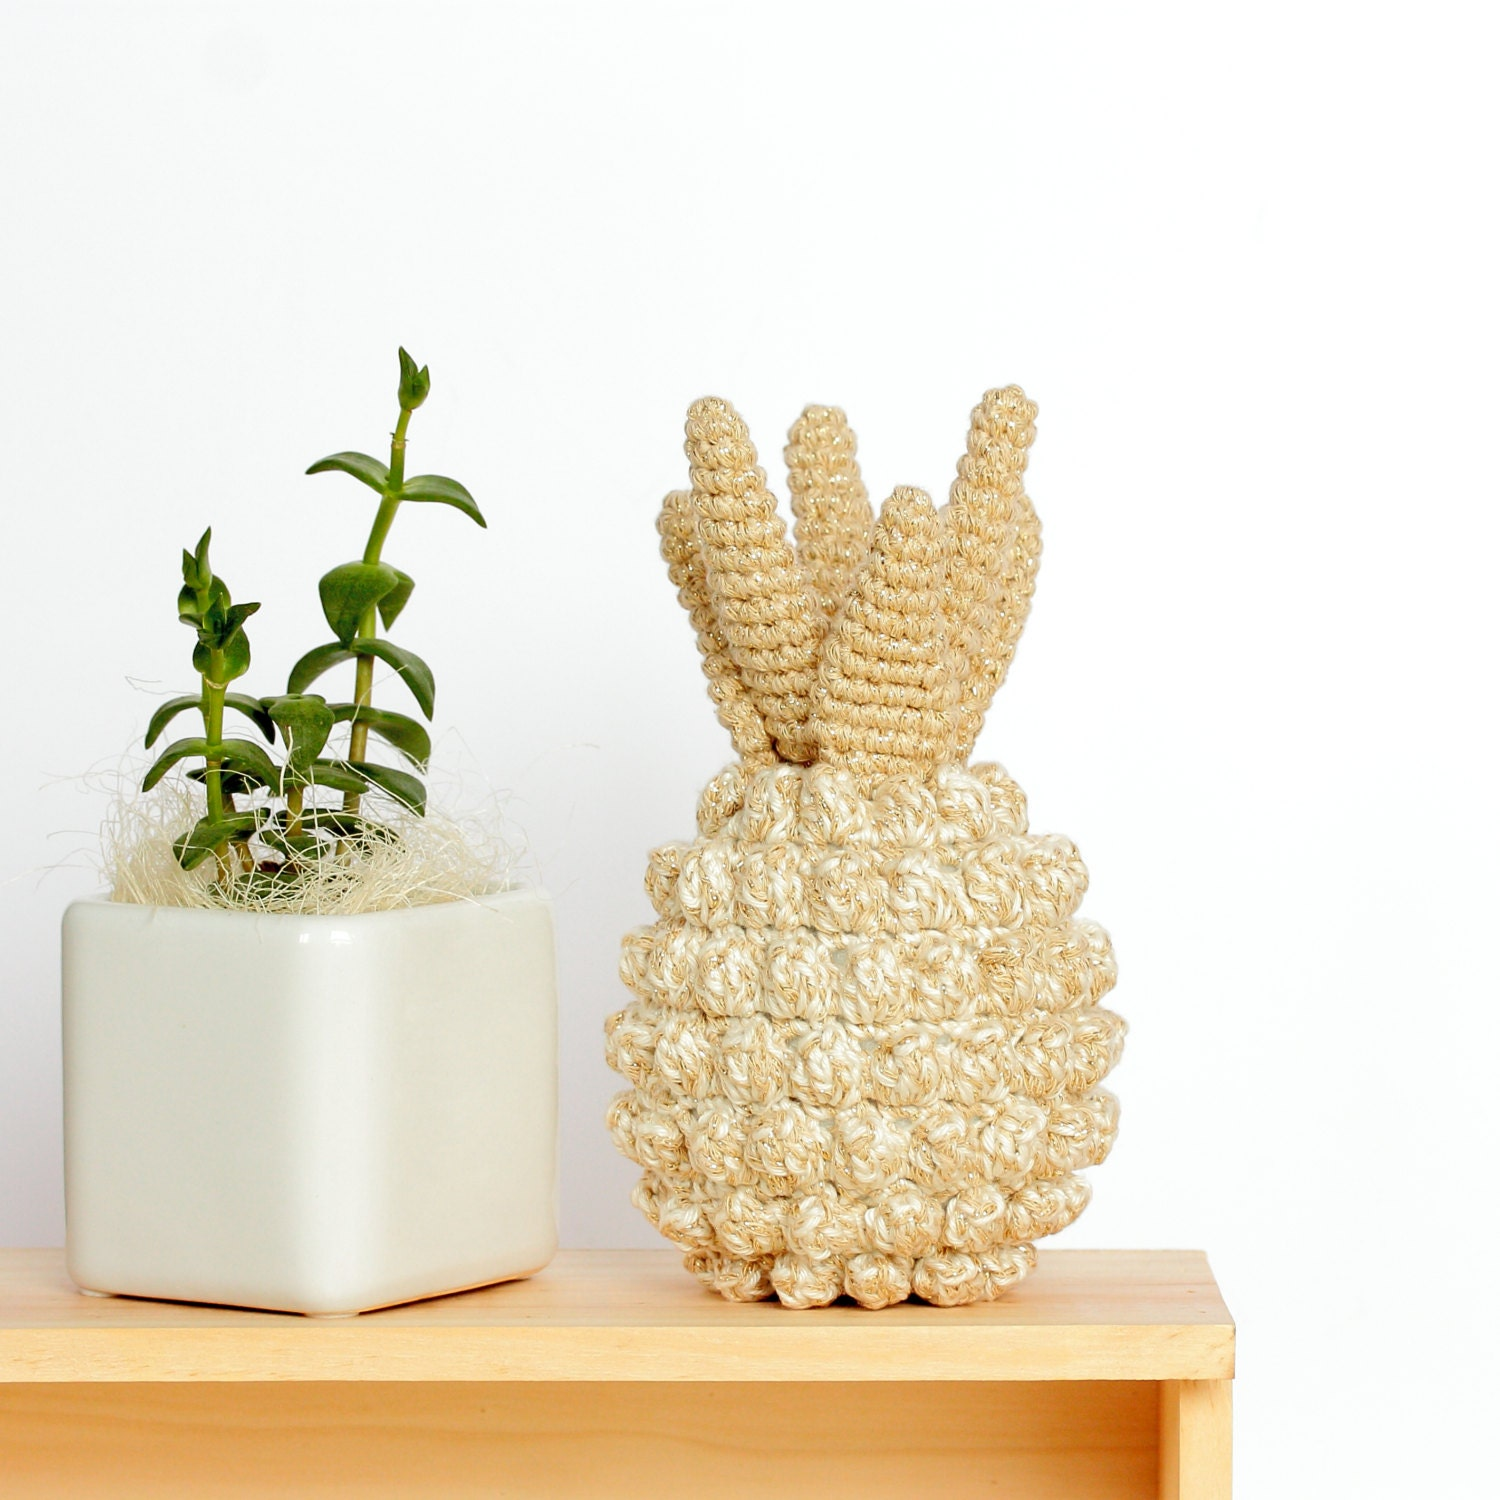 Pineapple home decor crochet pineapple decor pineapple Ananas dekoration